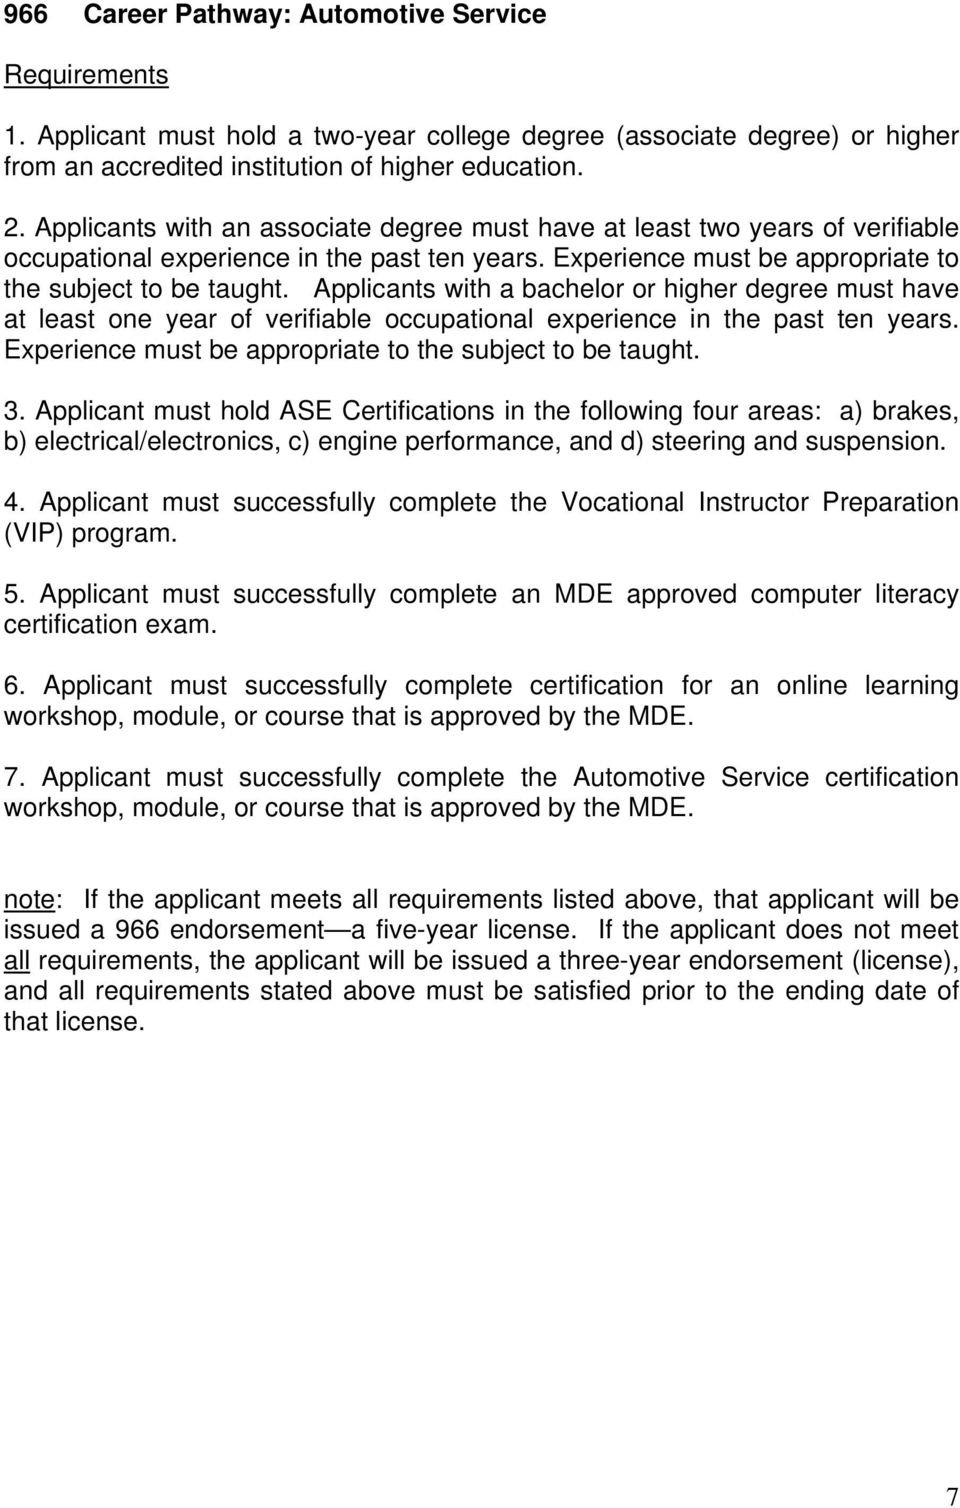 Applicant must successfully complete the Vocational Instructor Preparation 5. Applicant must successfully complete an MDE approved computer literacy 6.